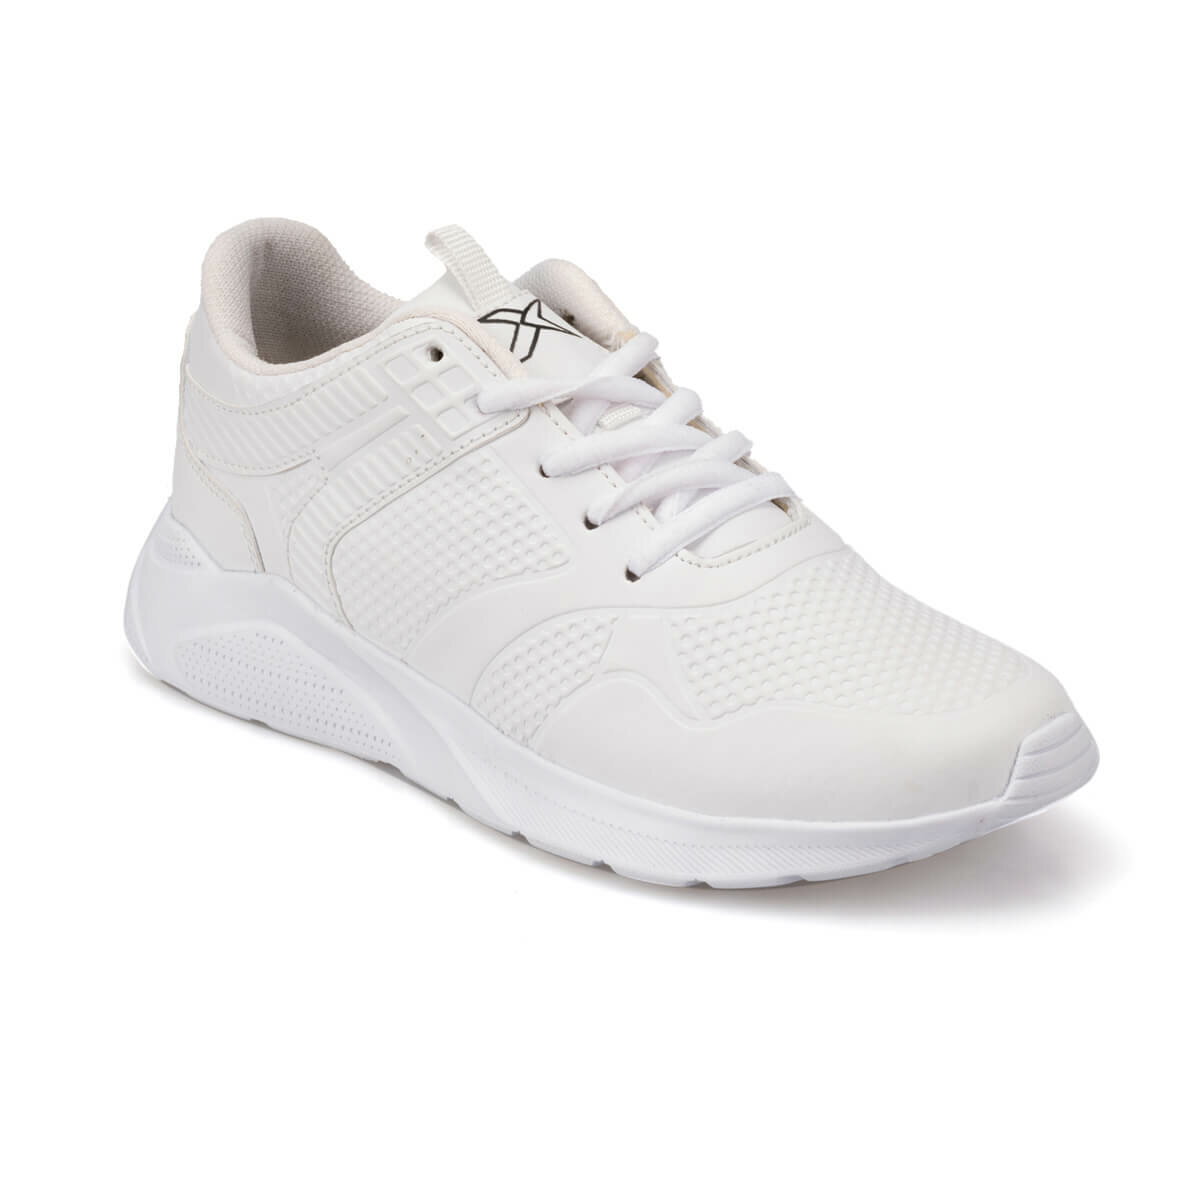 FLO NEDA PU W 9PR White Women 'S Sneaker Shoes KINETIX